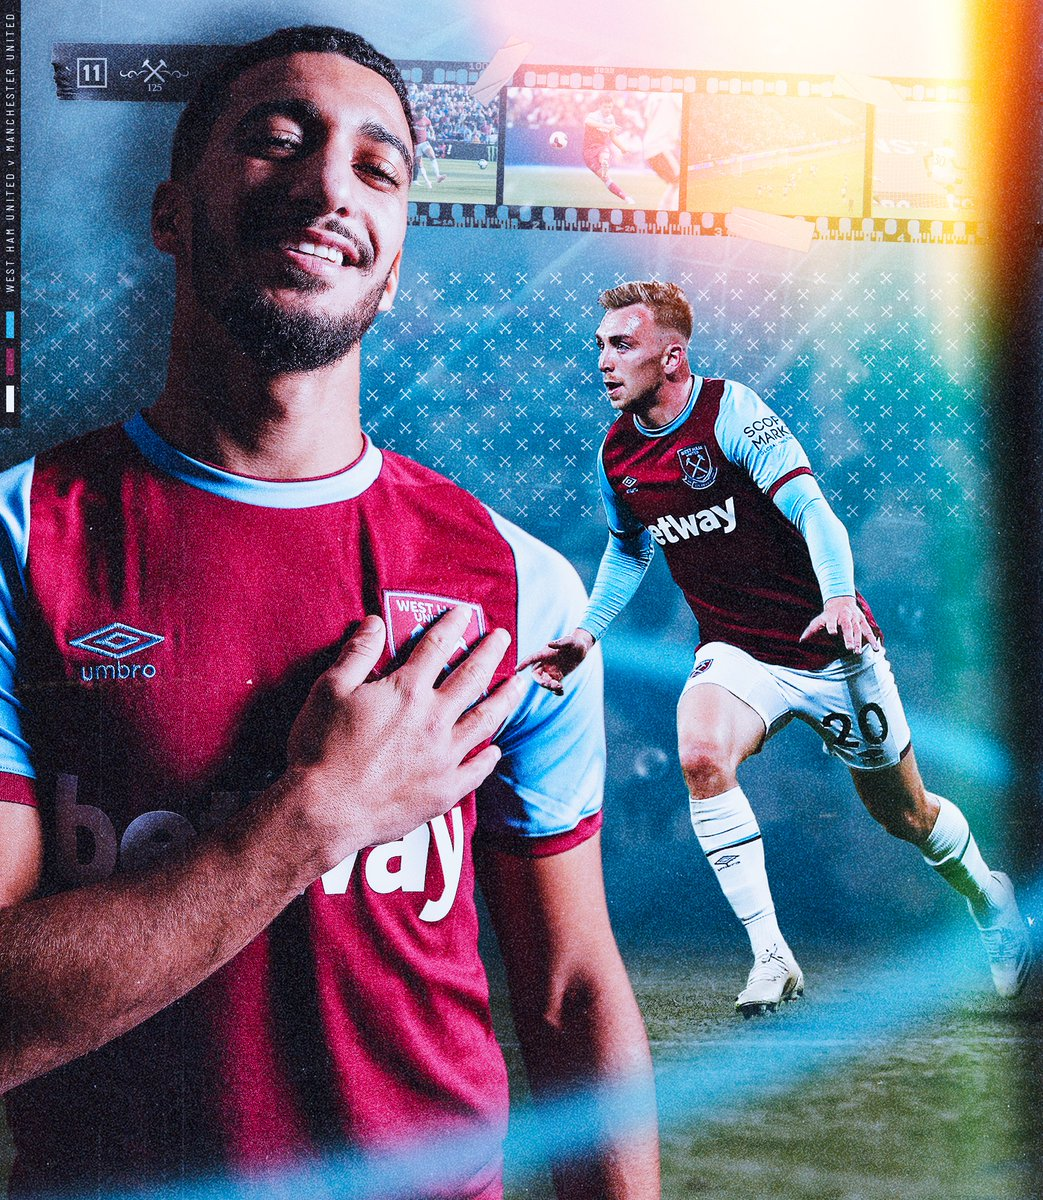 West Ham United On Twitter Welcome Back Hammers It S Matchday Come On You Irons Whumun